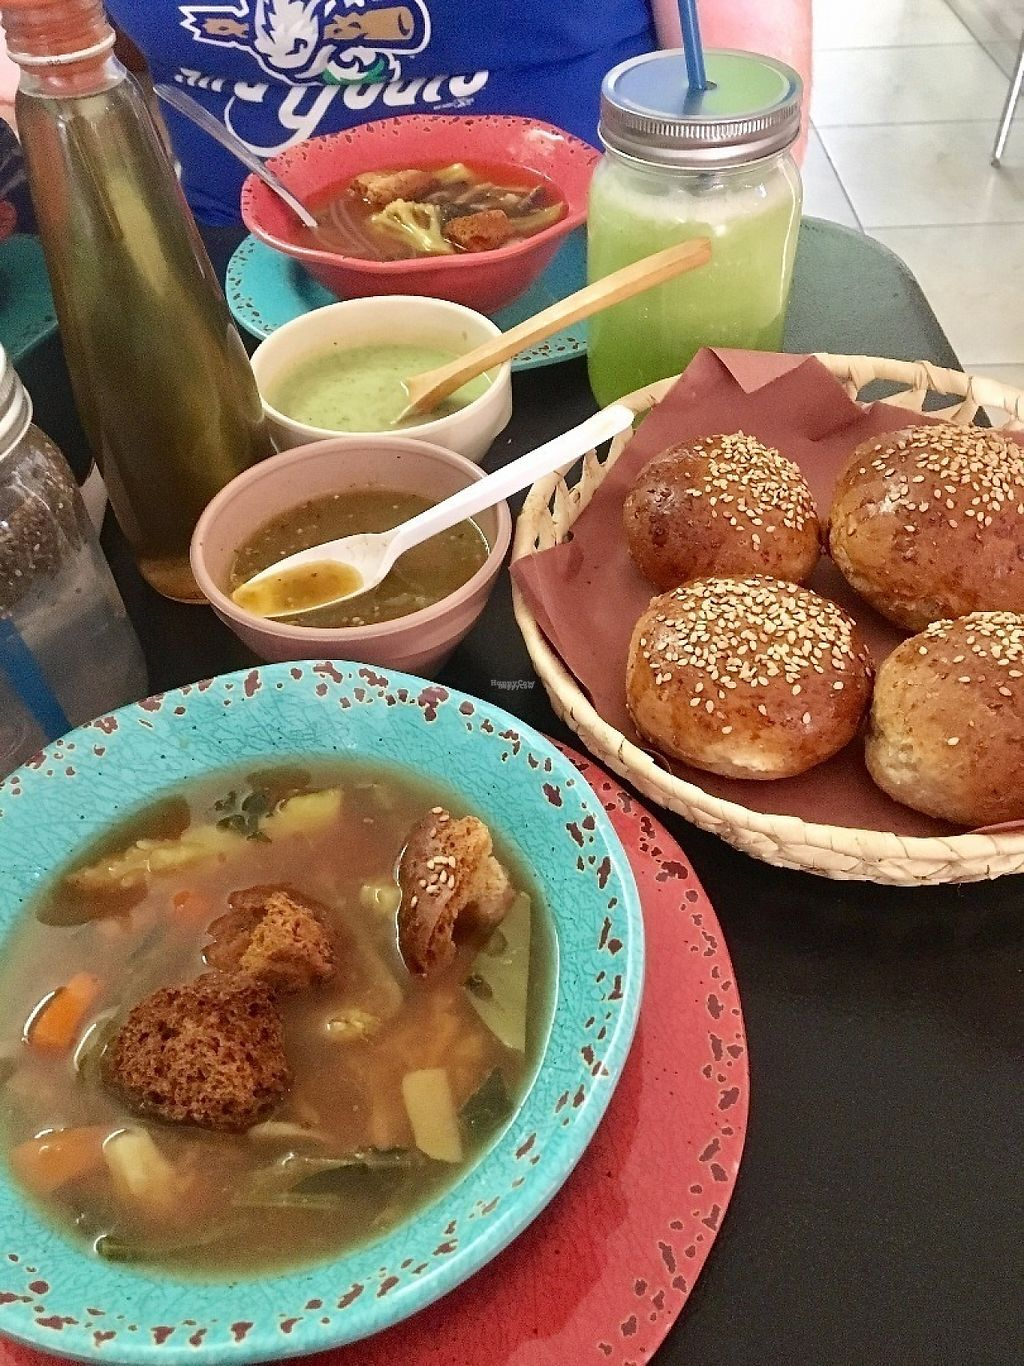 """Photo of Trigo Verde Naturistas Store and Cafe  by <a href=""""/members/profile/instantxkarmaa"""">instantxkarmaa</a> <br/>Nice spread! <br/> February 8, 2017  - <a href='/contact/abuse/image/25734/224455'>Report</a>"""